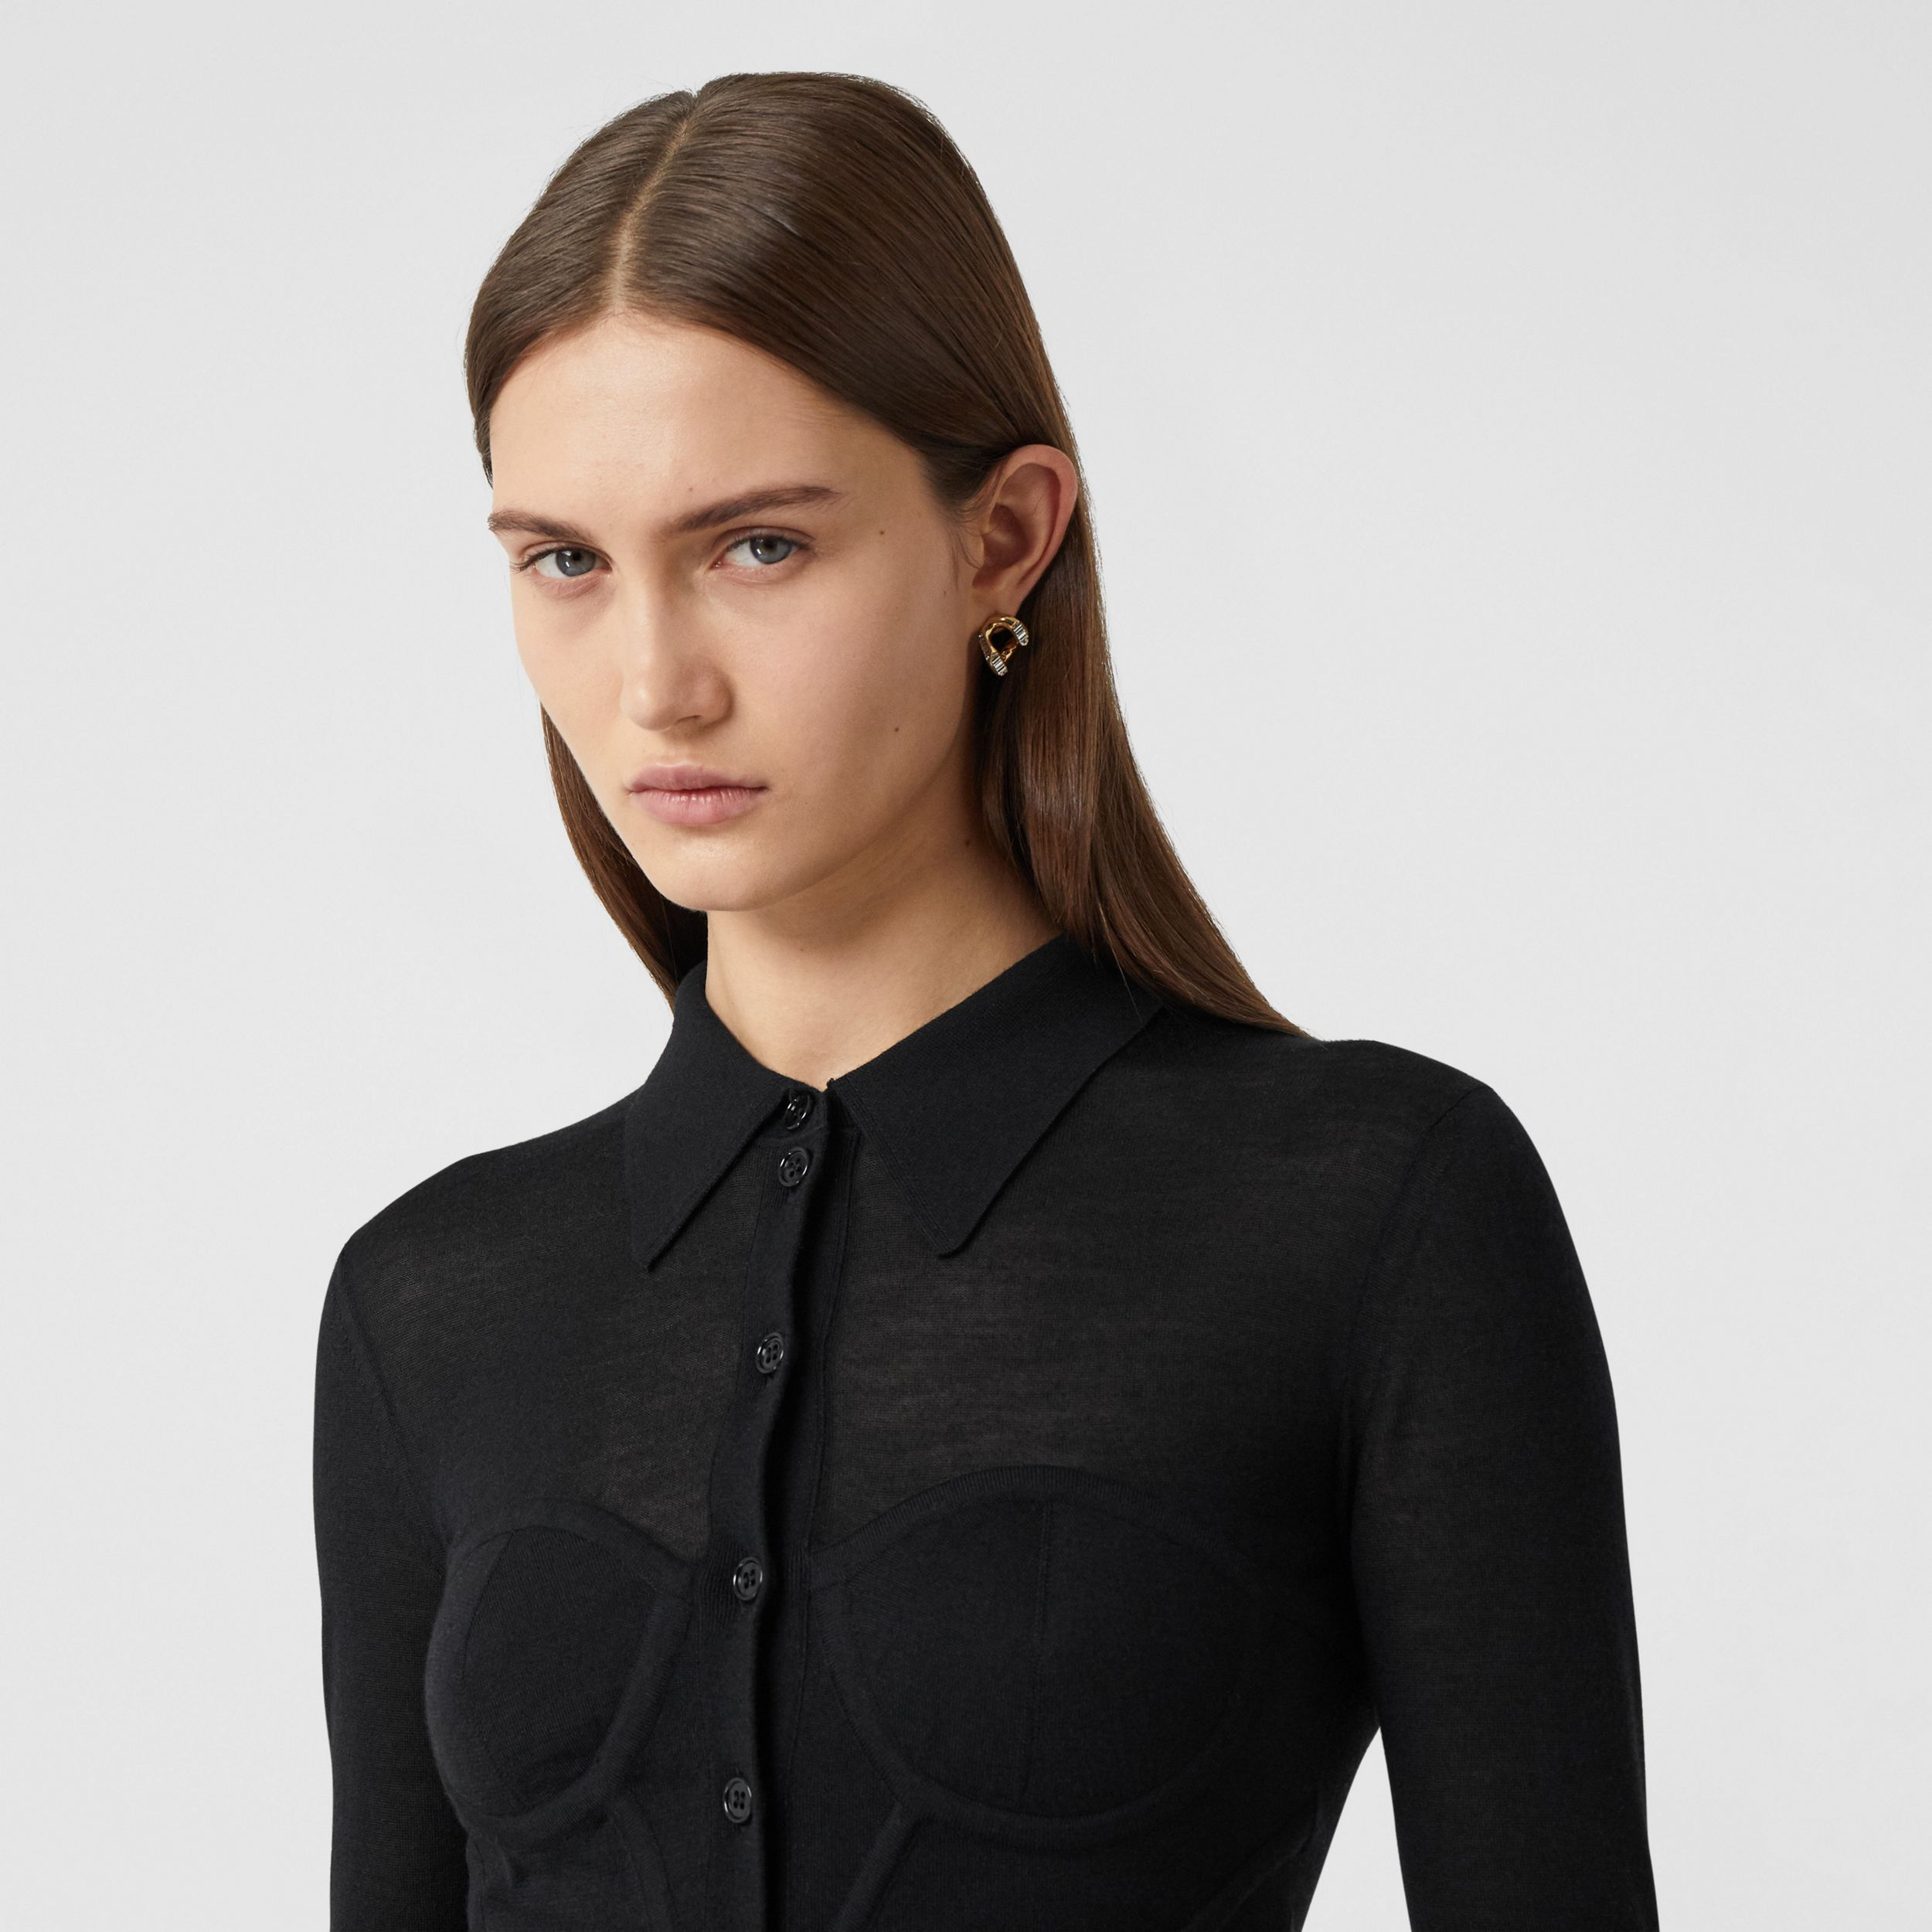 Corset Detail Knit Cashmere Silk Cardigan in Black - Women | Burberry Hong Kong S.A.R. - 2